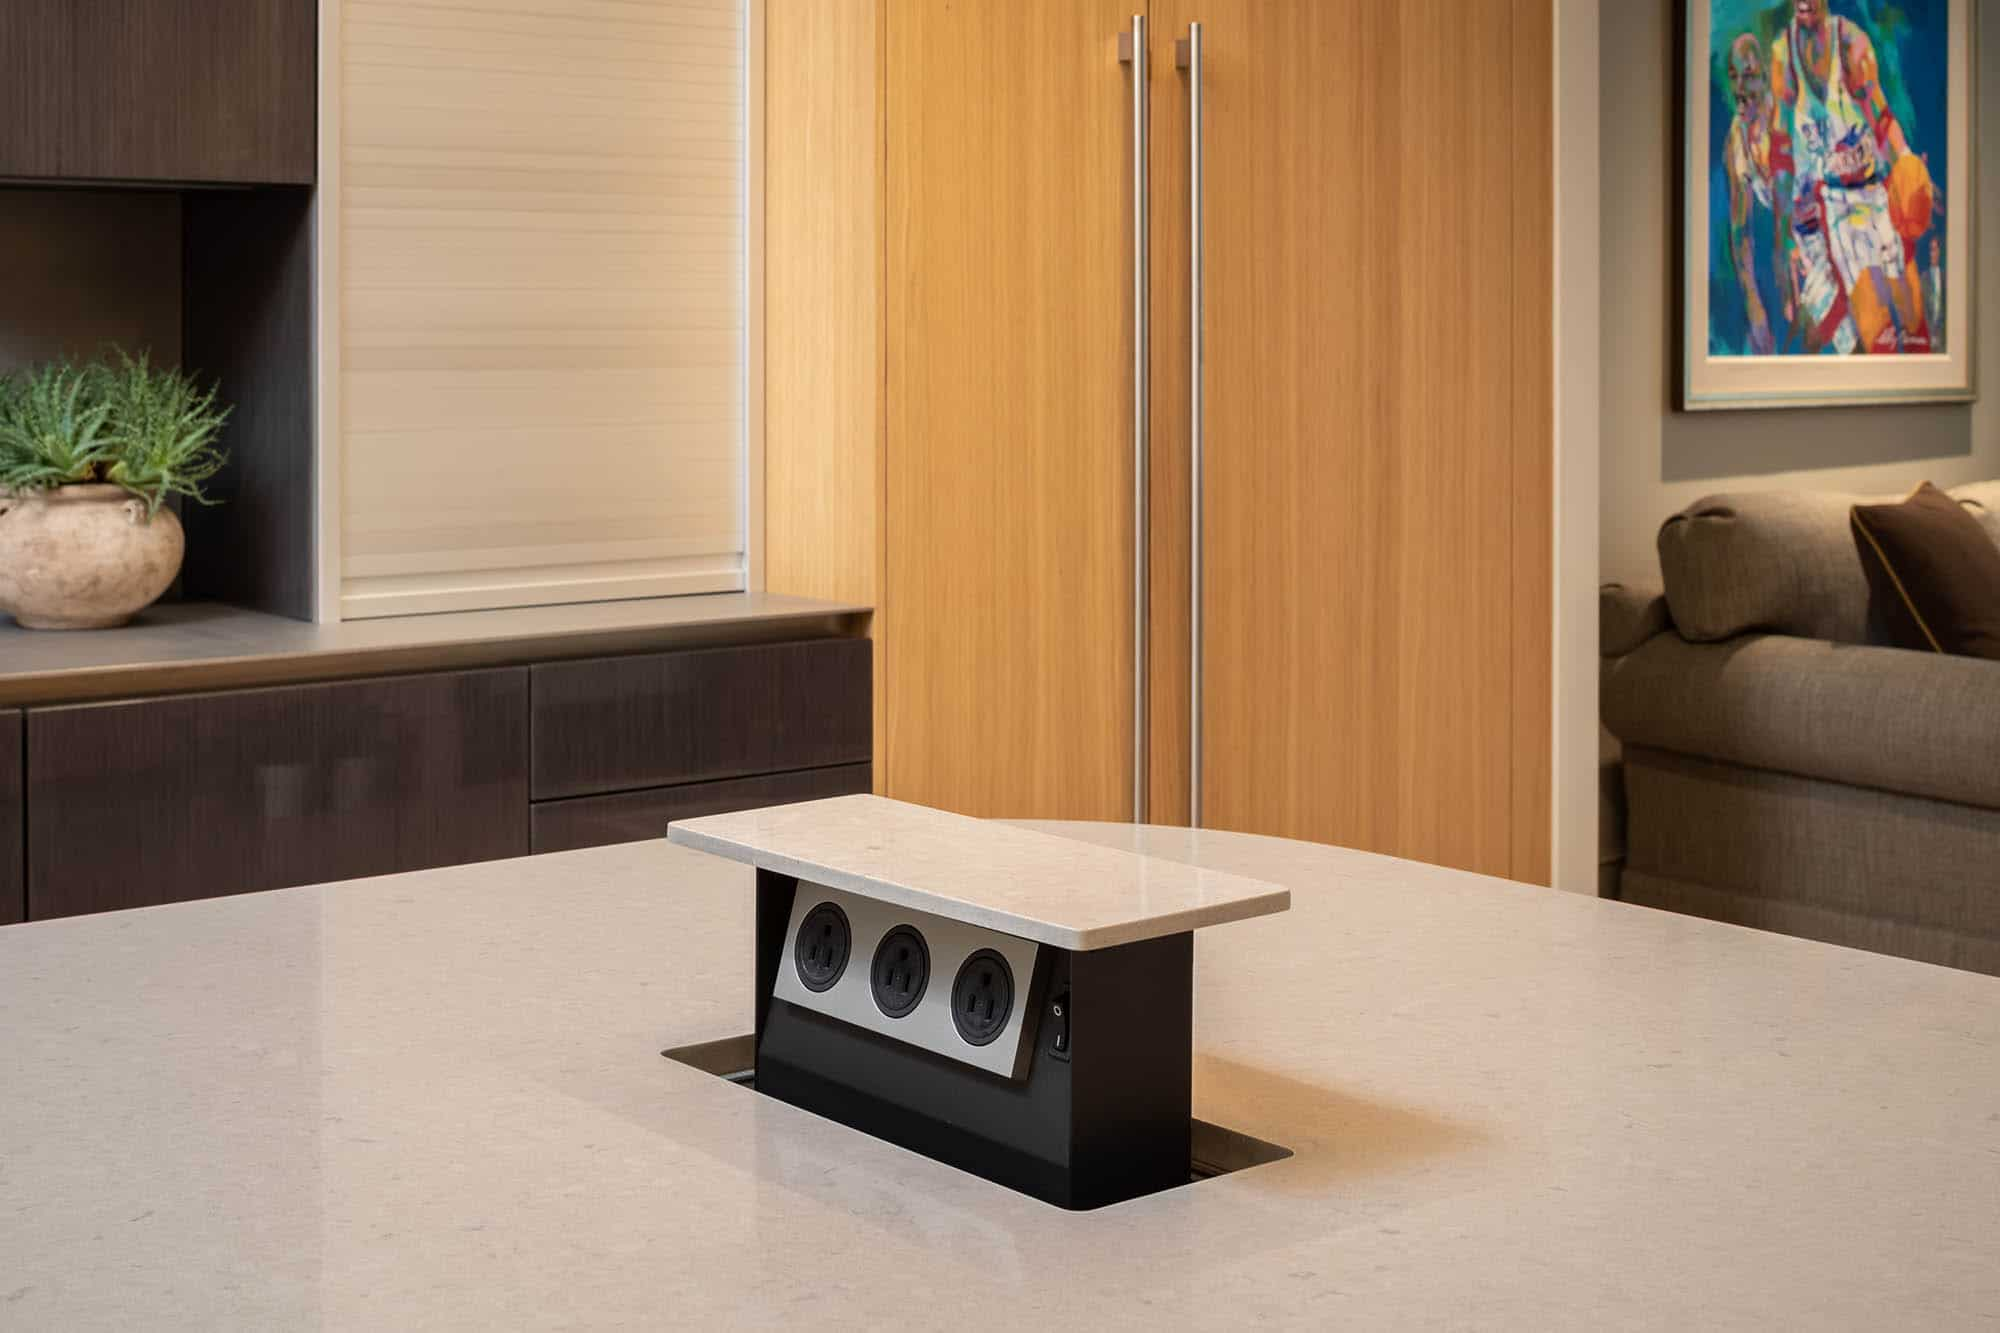 hidden outlets in solid surface countertop are convenient when opened